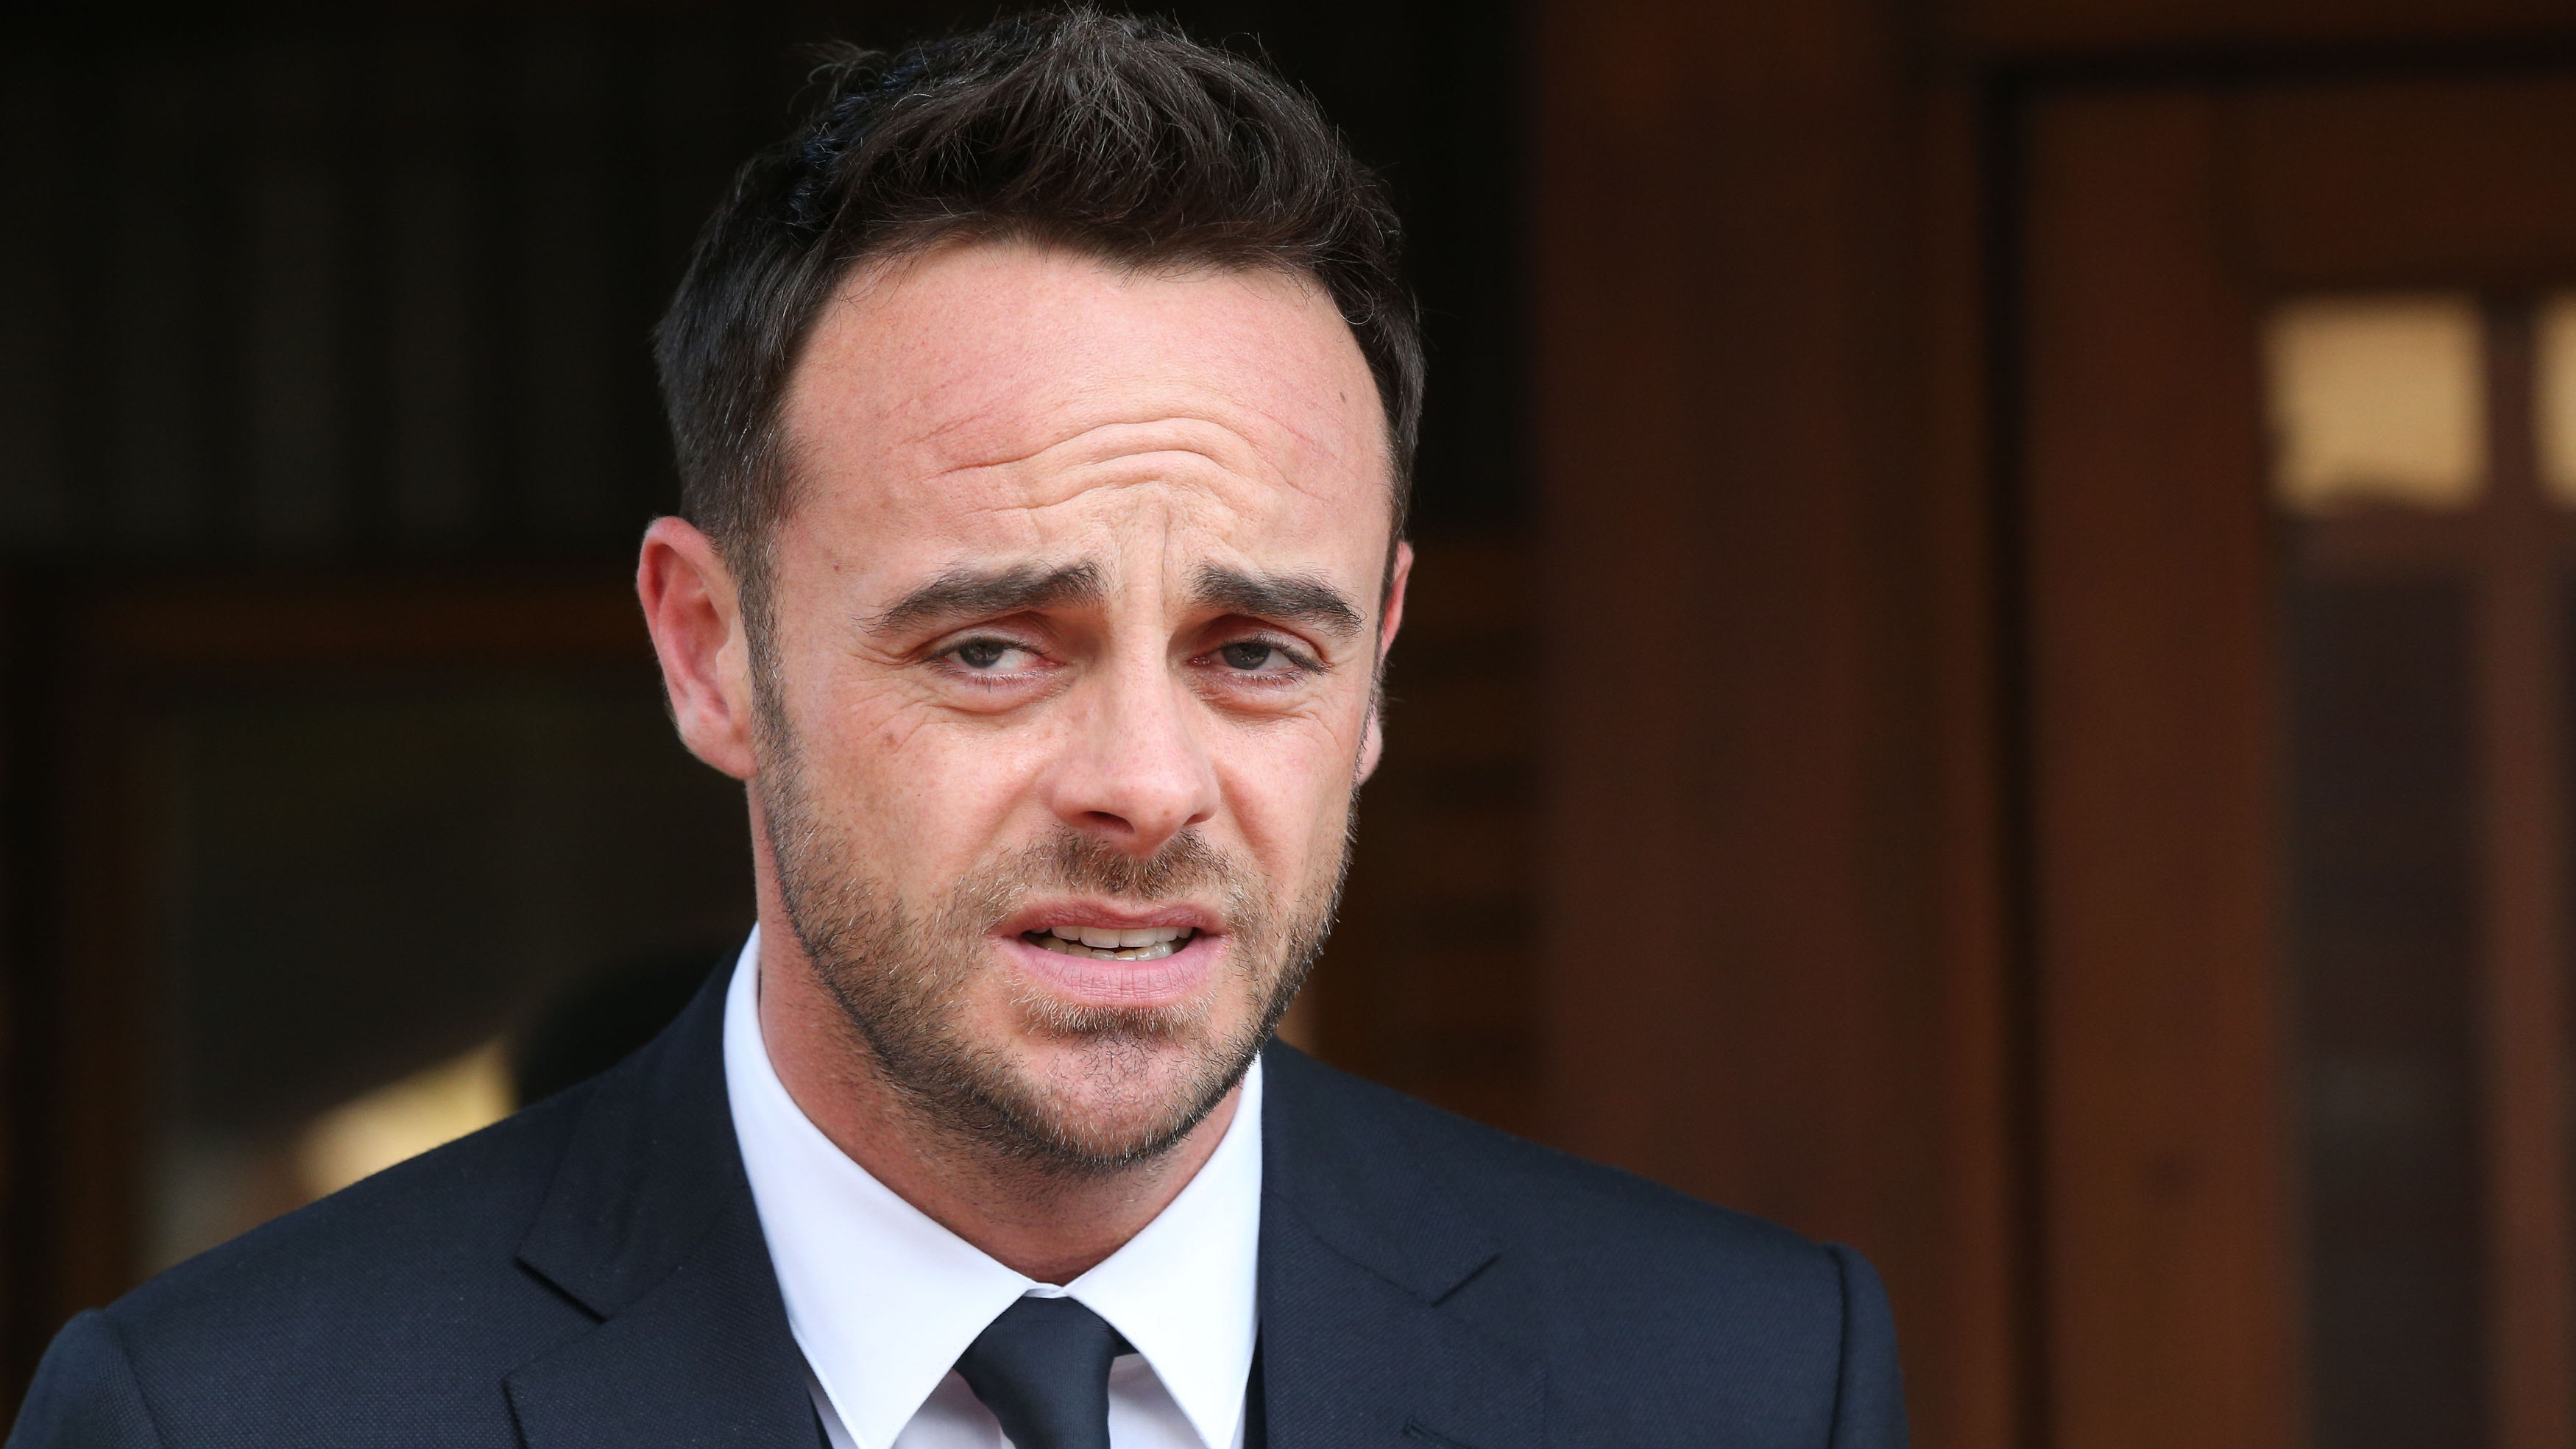 http://tv.bt.com/images/ant-mcpartlin-hails-rock-anne-marie-corbett-for-role-in-recovery-136432659117602601-190120111020.jpg